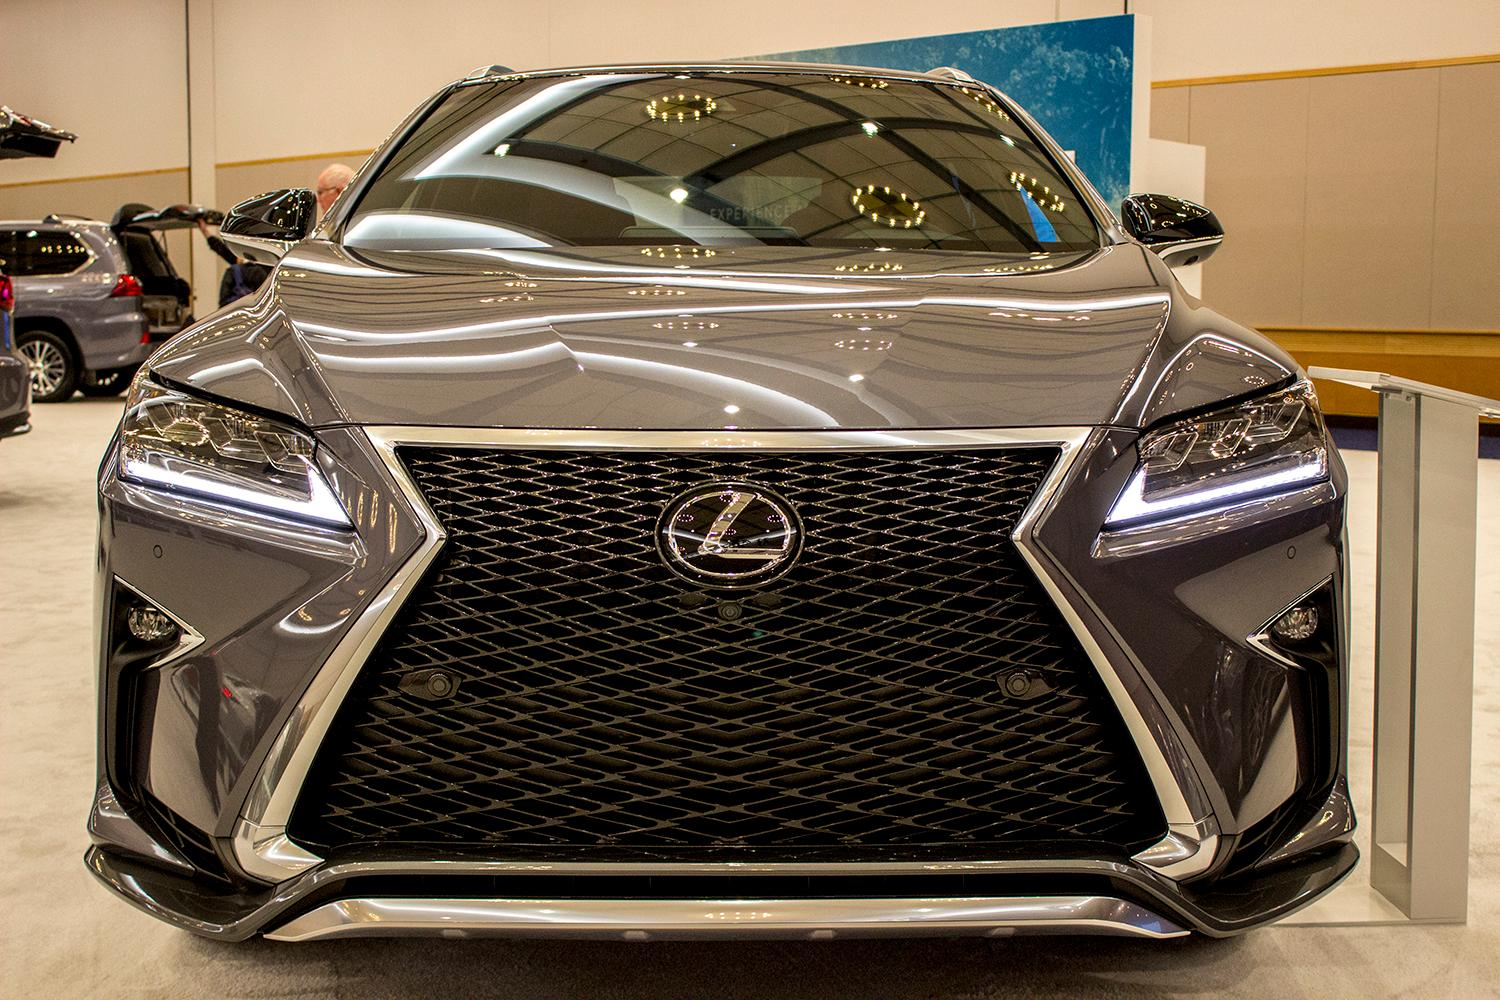 Lexus 2017 RX 350 F-Sport - The Portland International Auto Show began at the Oregon Convention Center on Jan. 25, 2018. The event drew prospective buyers and others who enjoyed looking at and comparing vehicles. Photo by Amanda Butt